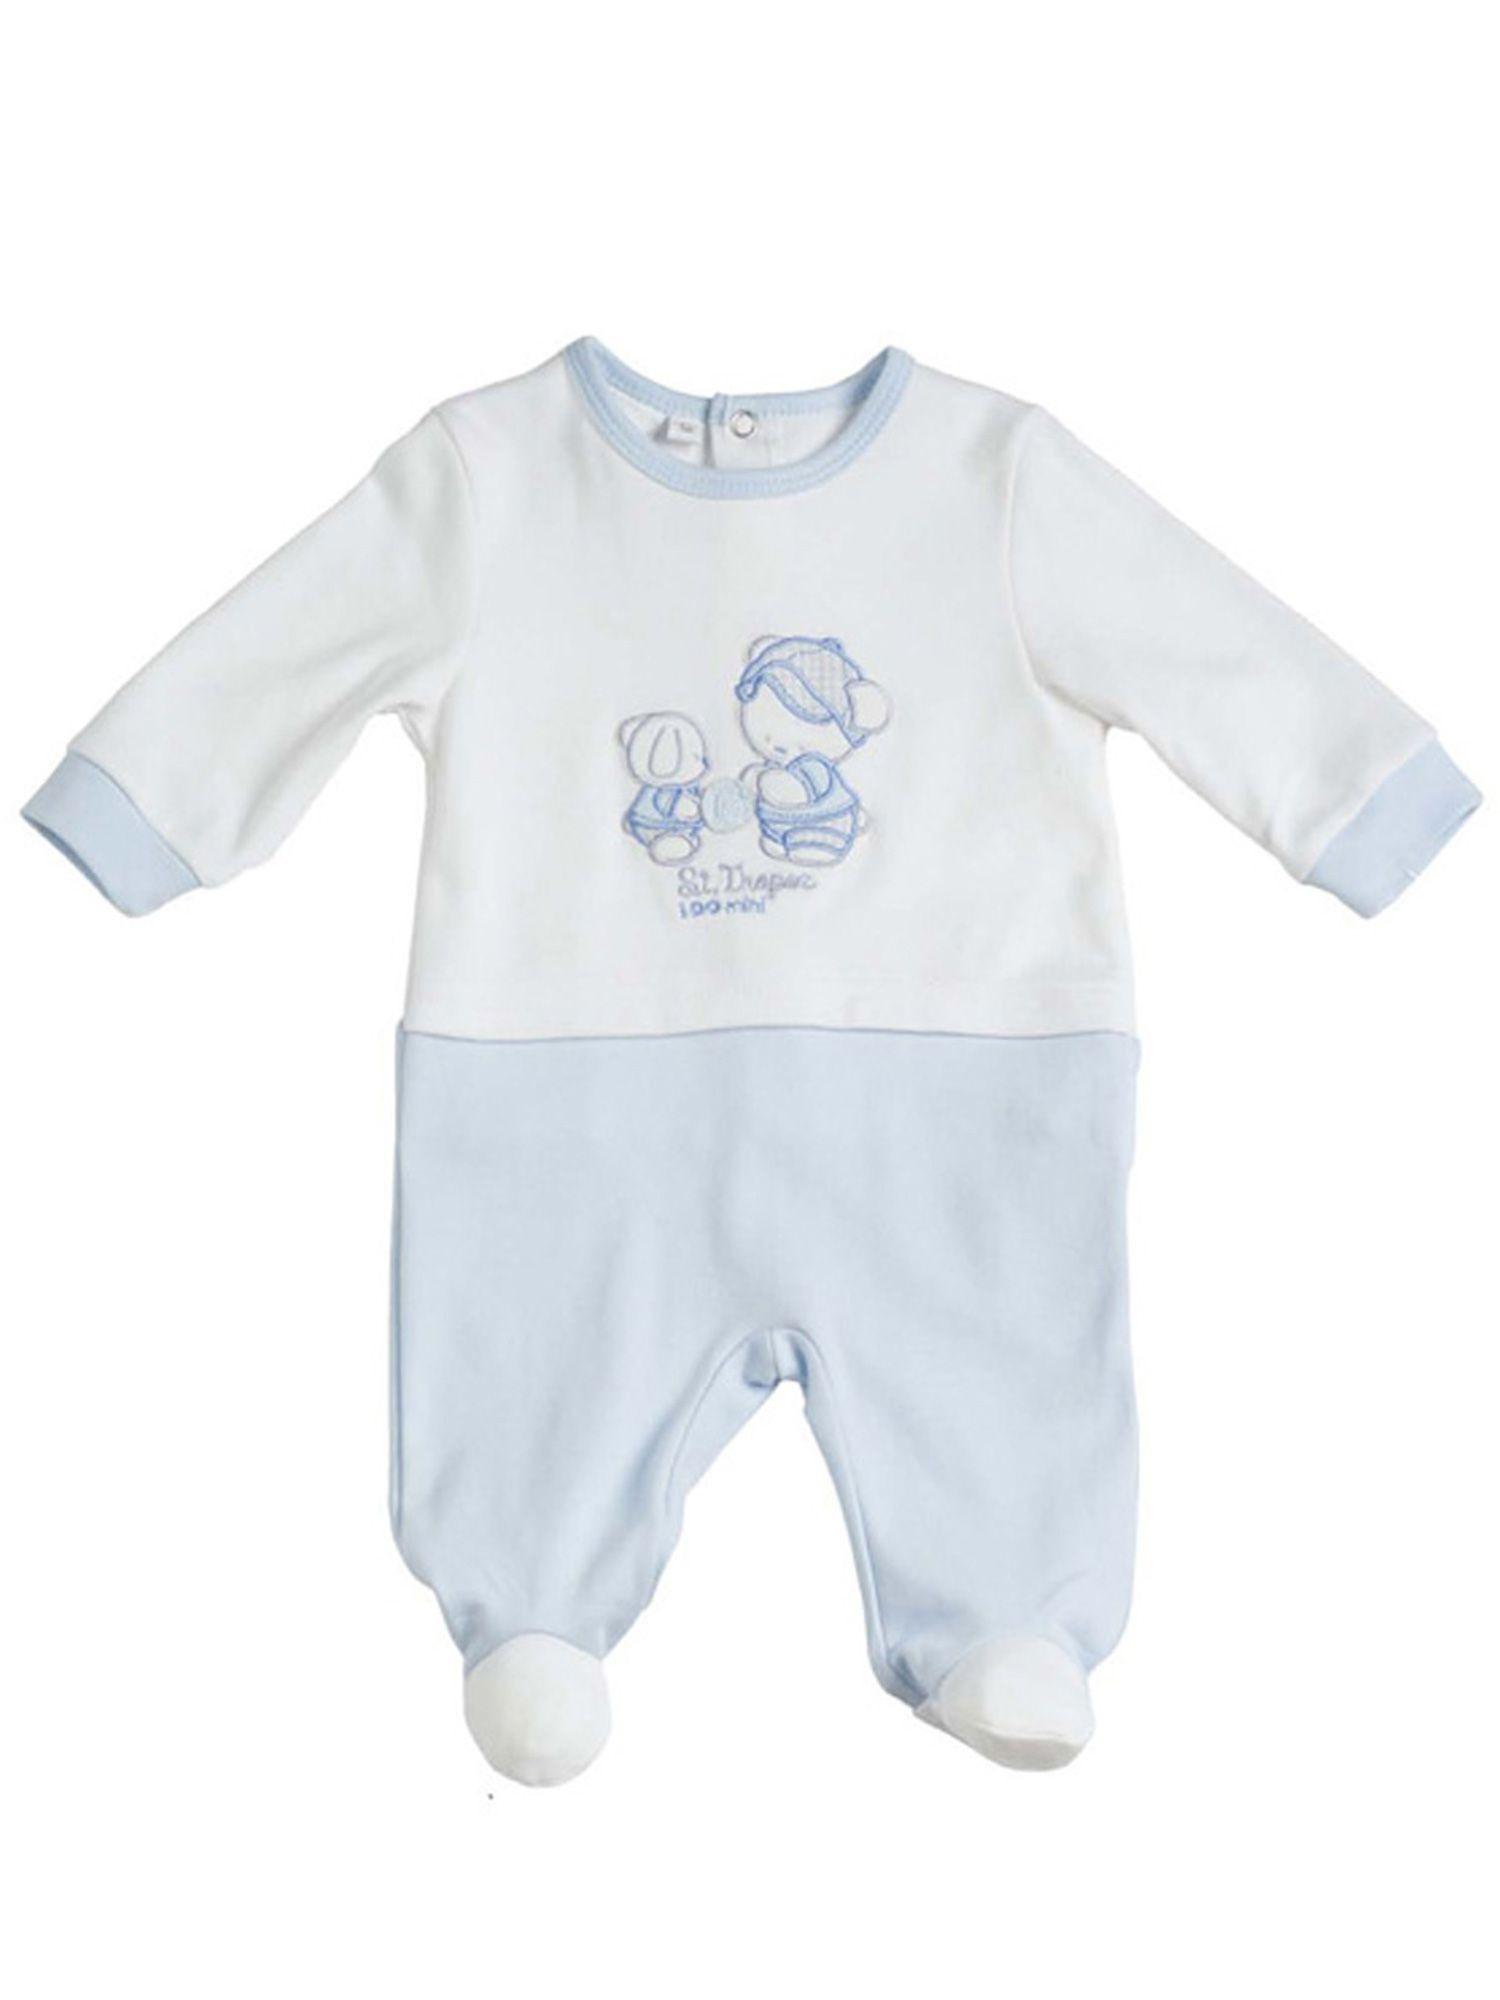 Boys white and blue cotton all in one